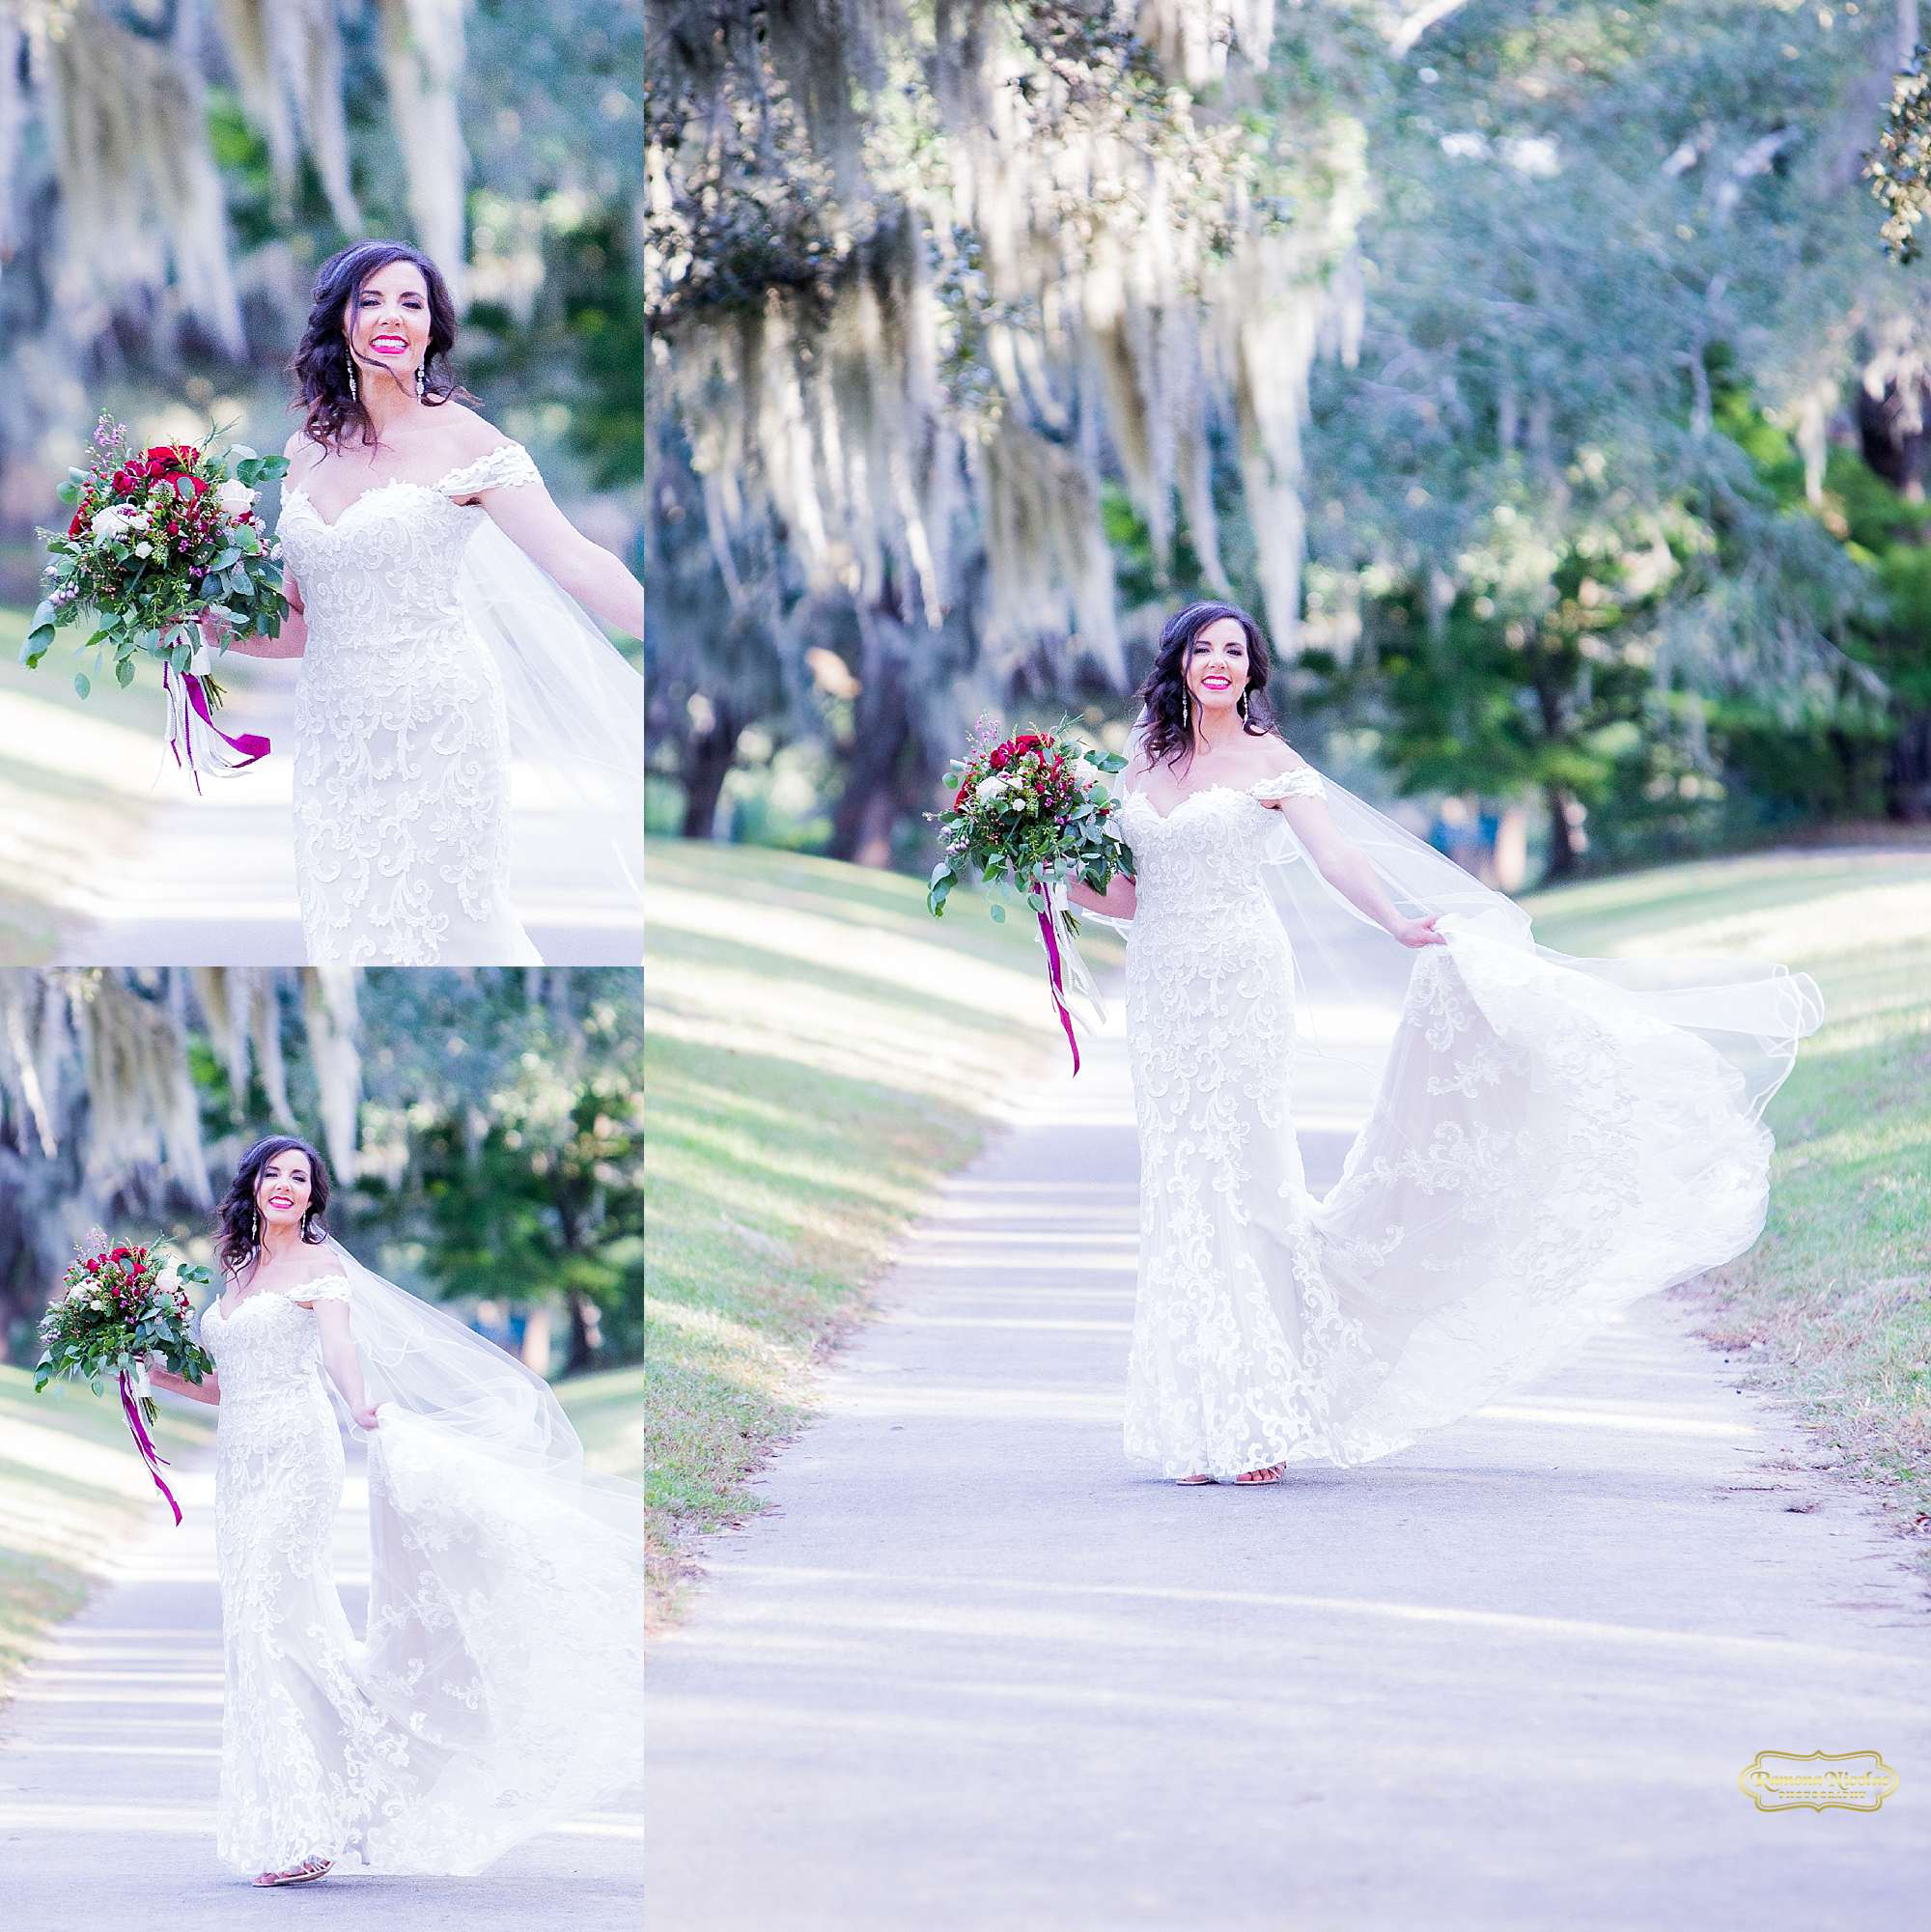 bride laughing and spinning twirling in her wedding dress with red flowers at brookgreen gardens by ramona nicolae photography myrtle beach wedding photographer-2.jpg